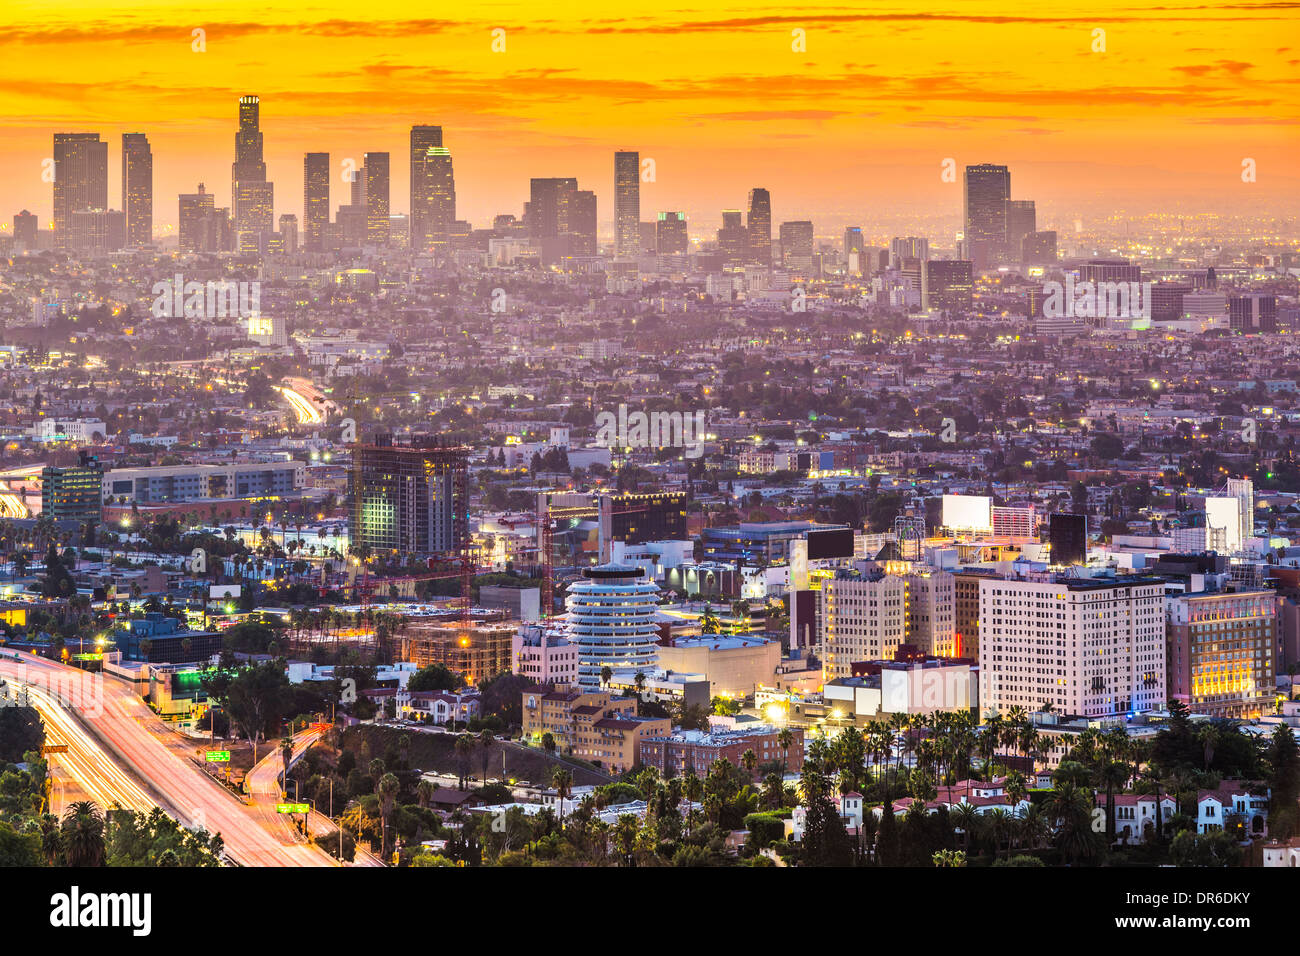 Los Angeles, California, USA early morning downtown cityscape. - Stock Image